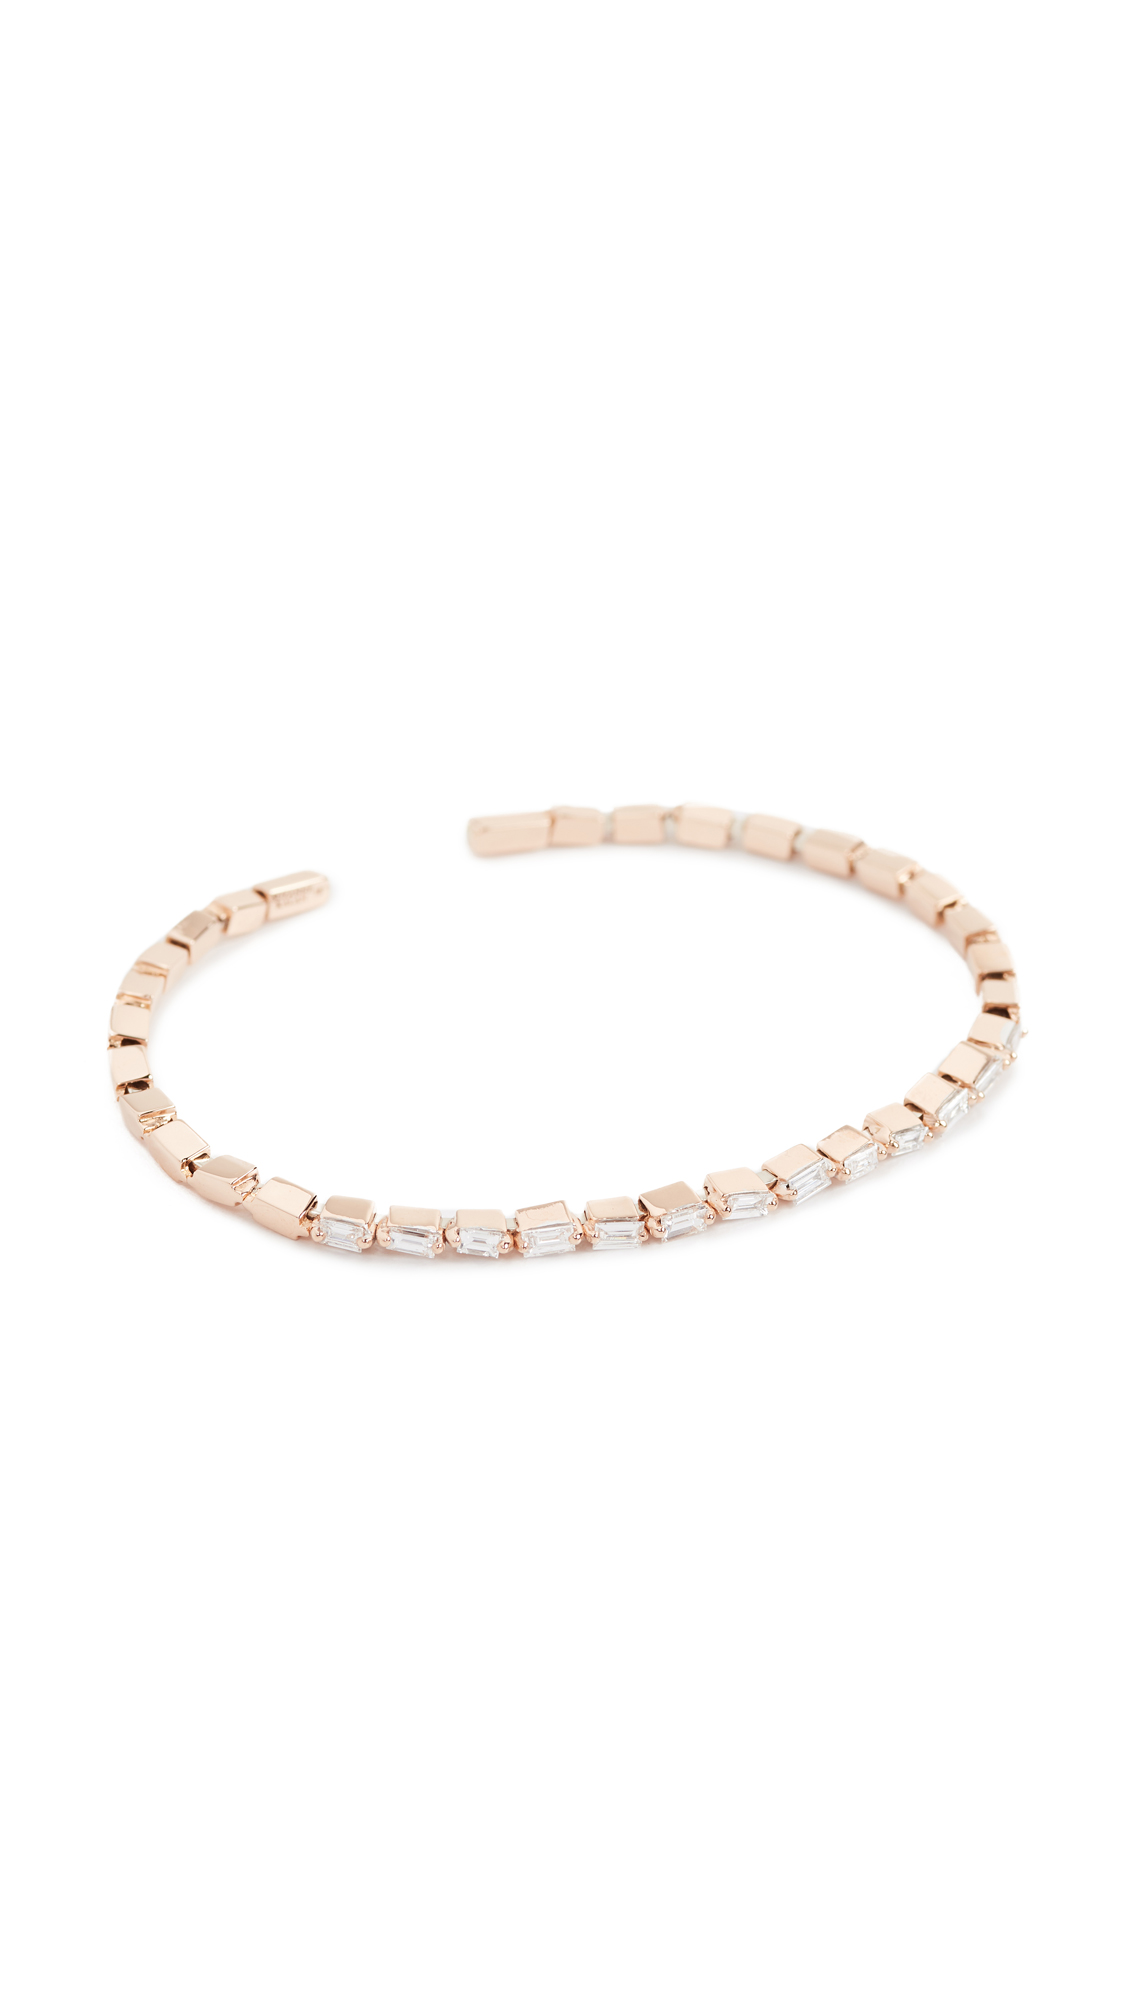 Suzanne Kalan Fireworks 18k Gold Diamond Baguette Bracelet In Rose Gold